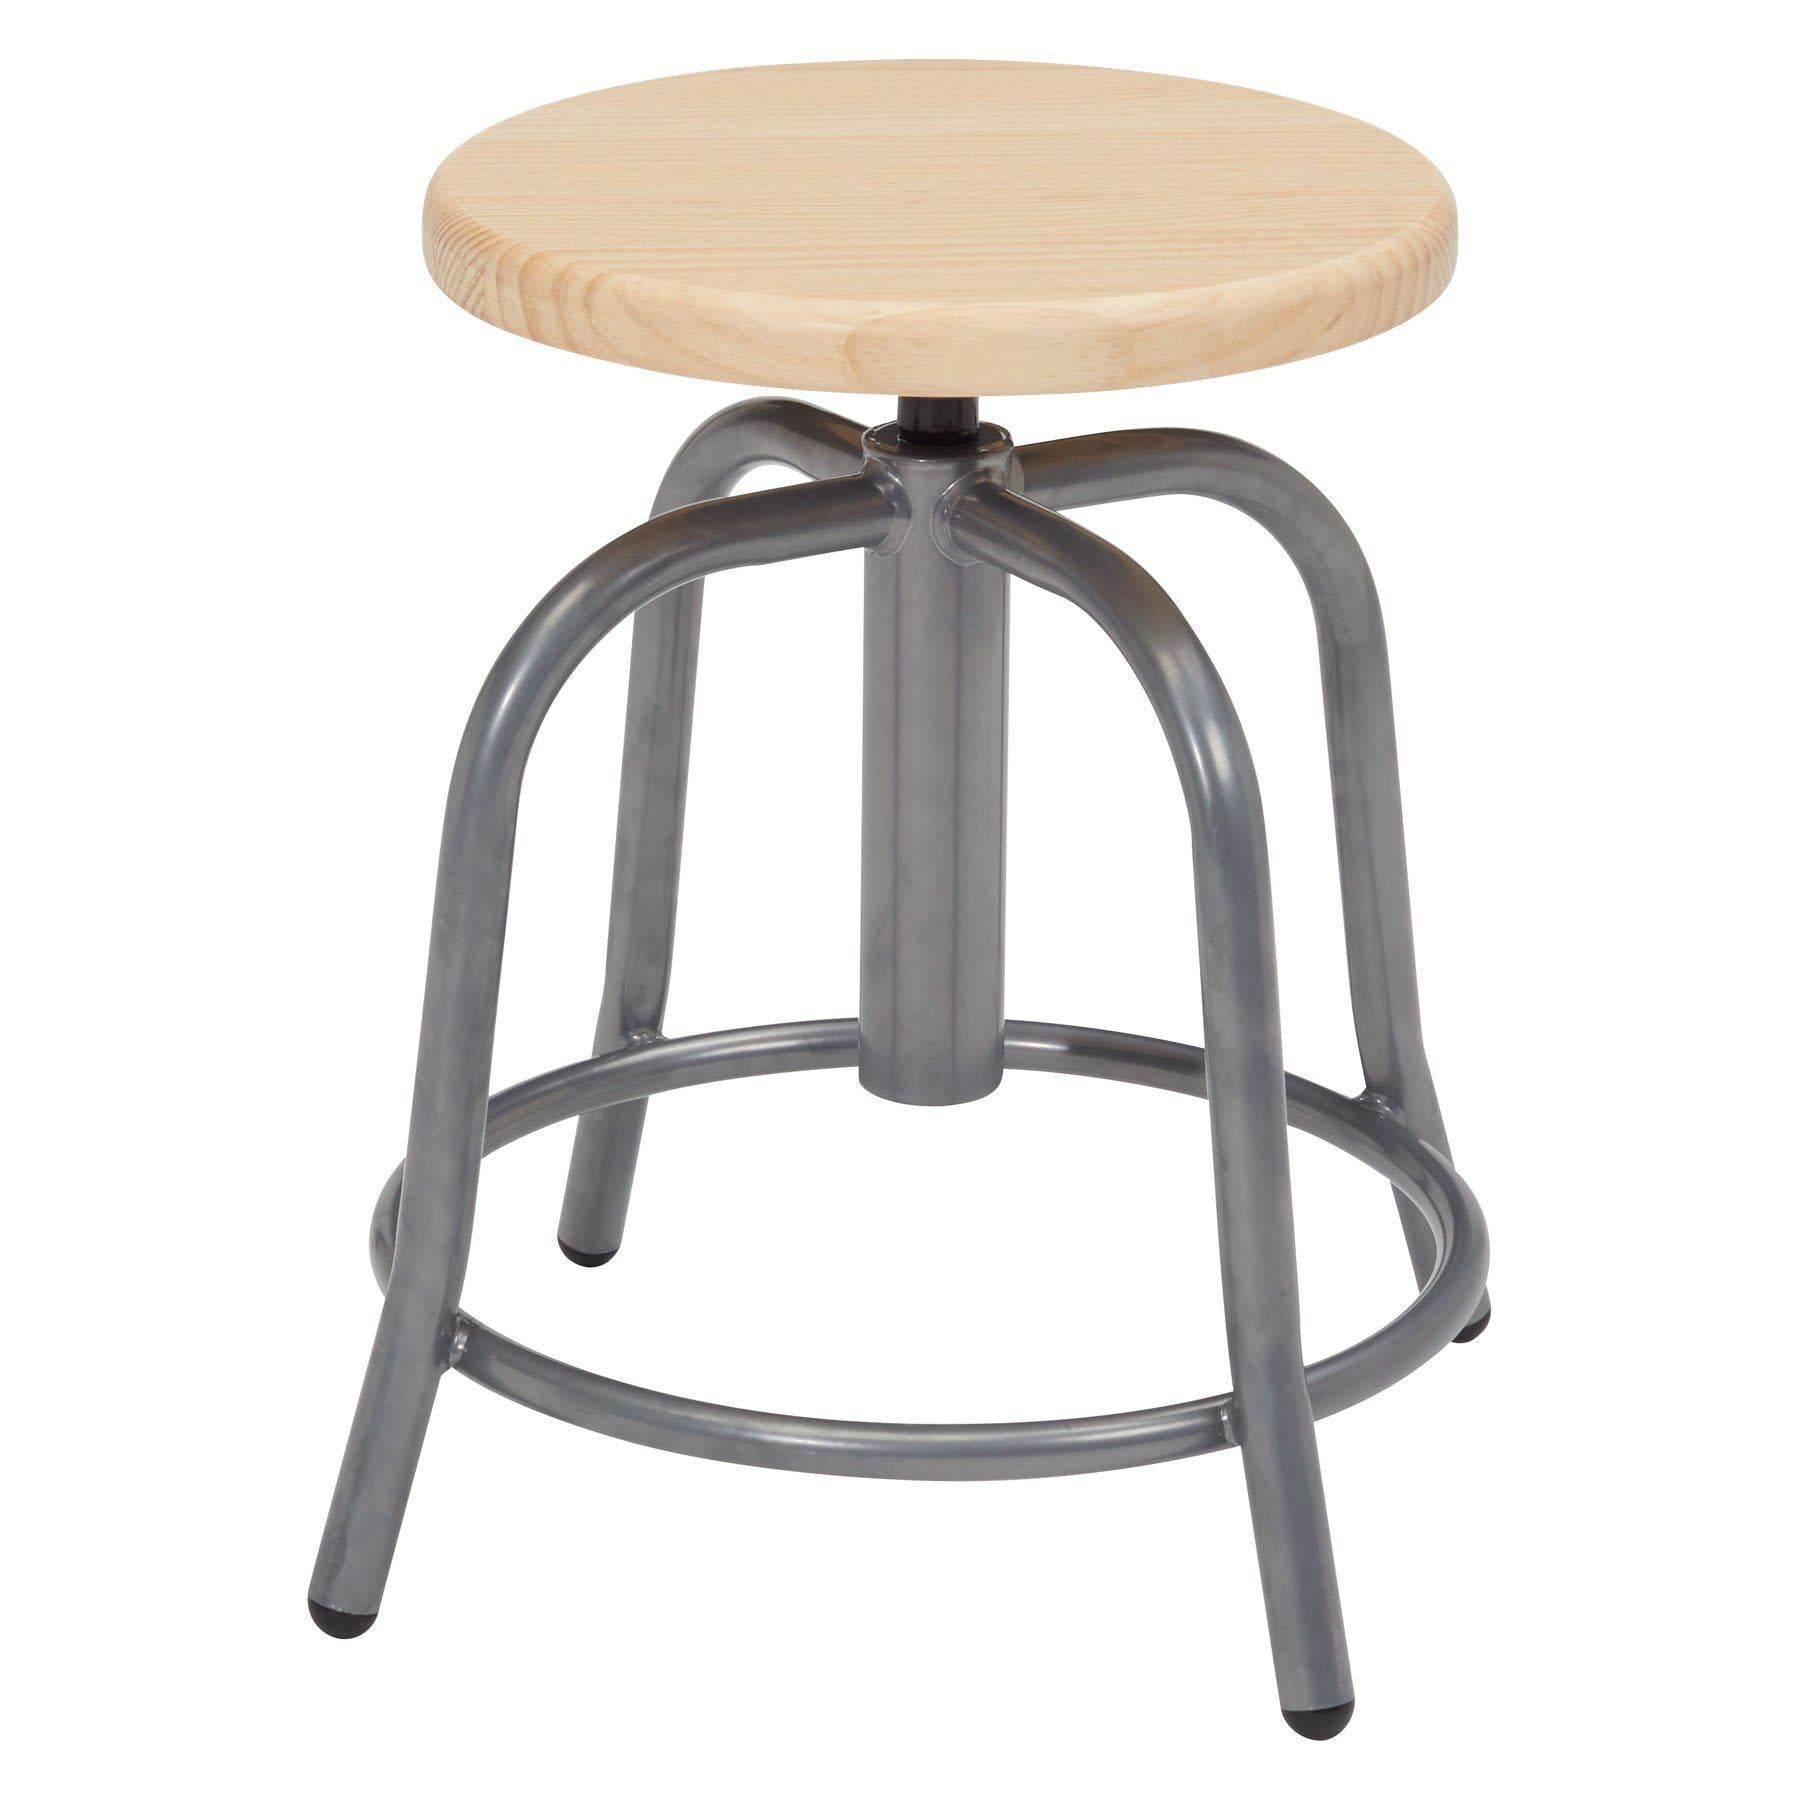 "19"" - 25"" Height Adjustable Swivel Stool, Wooden Seat and Steel Frame-Stools-Grey-"